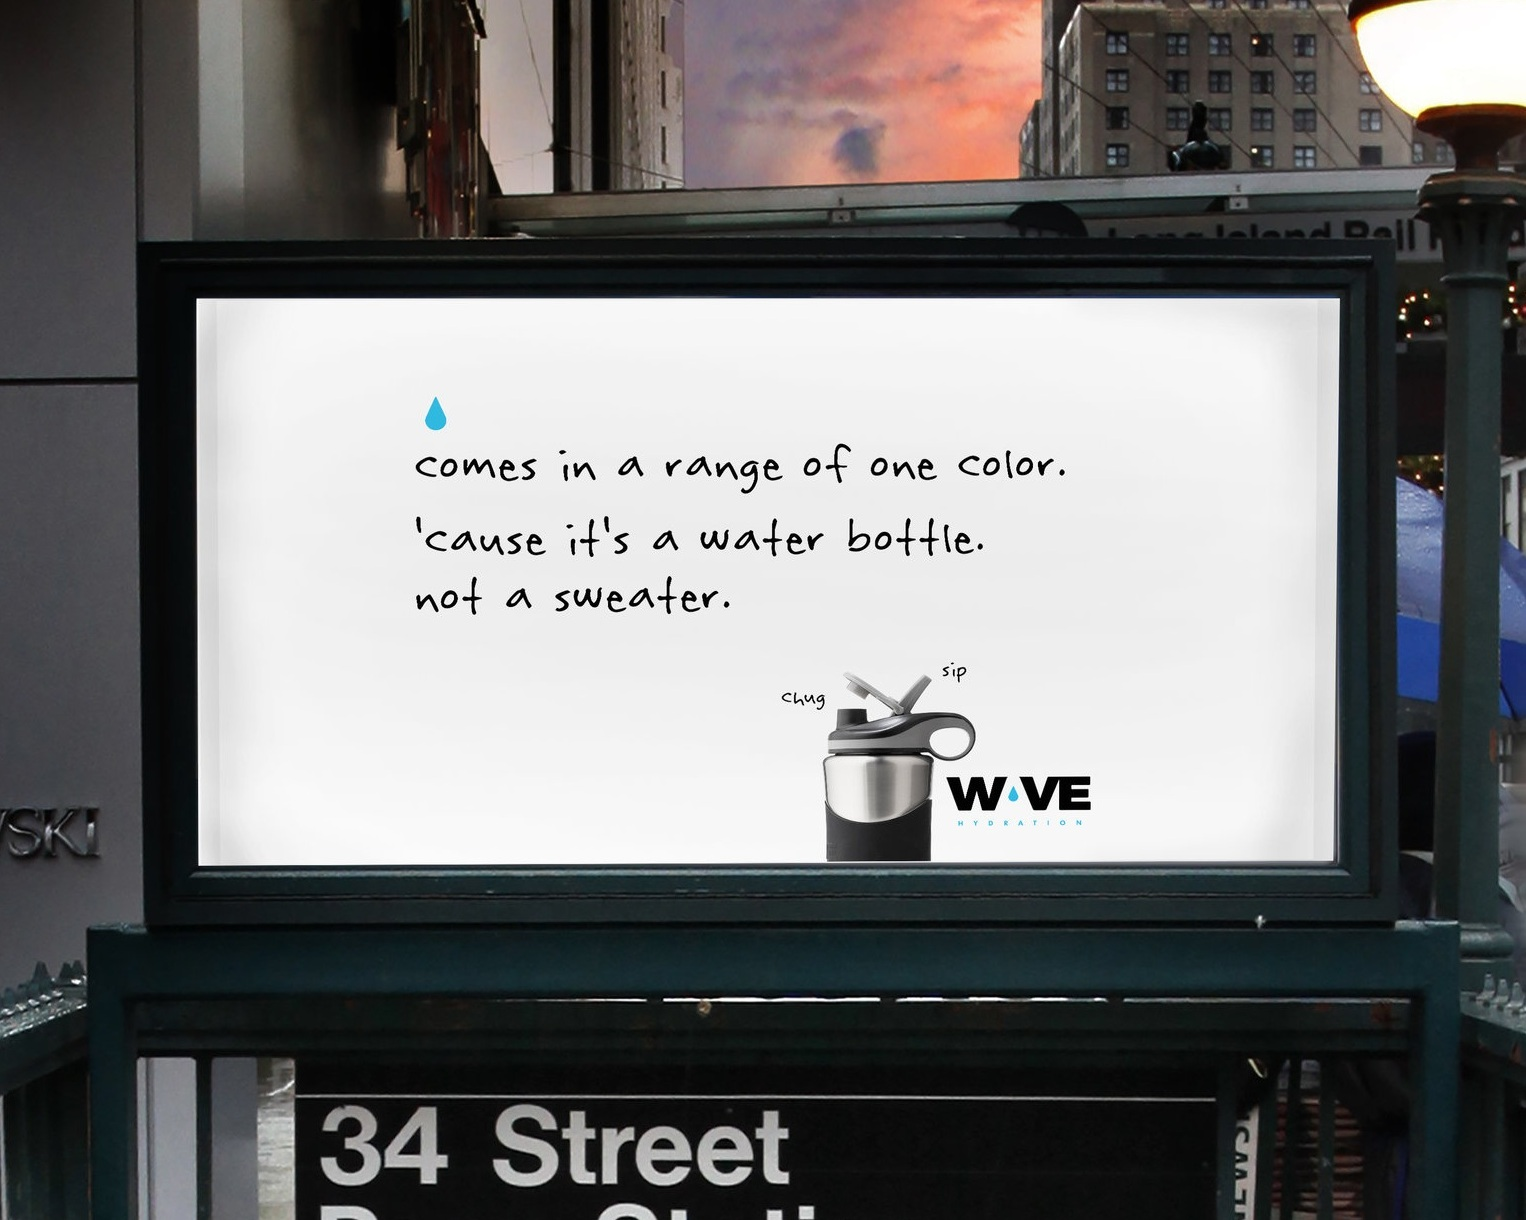 WAVE BILLBOARD NYC6 one color.jpg